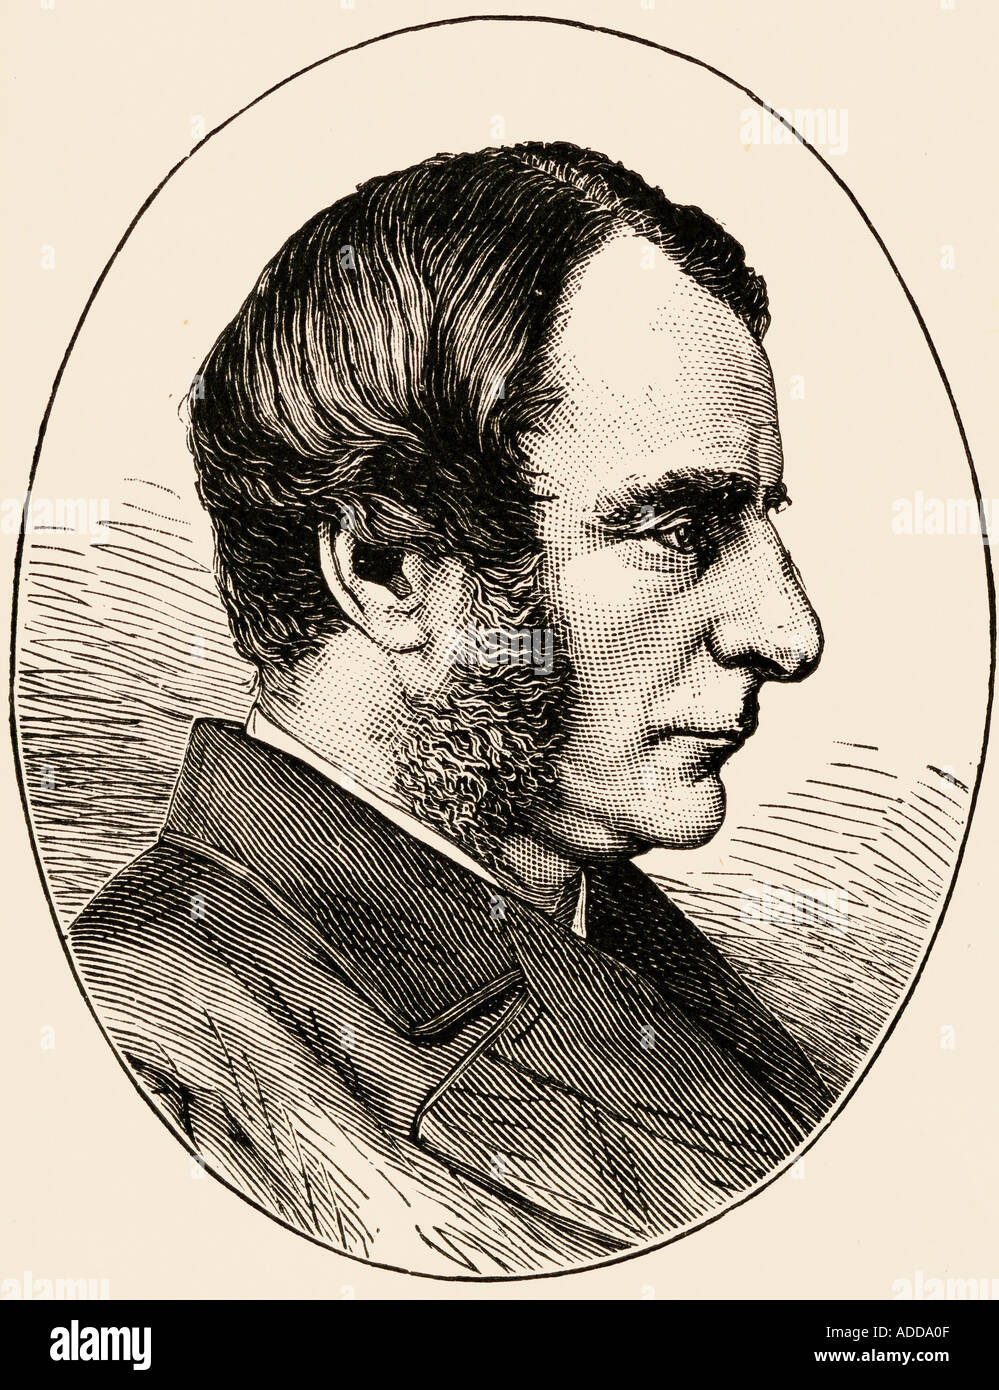 Charles Kingsley, 1819 -1875. Church of England priest, university professor, social reformer, historian and novelist. - Stock Image